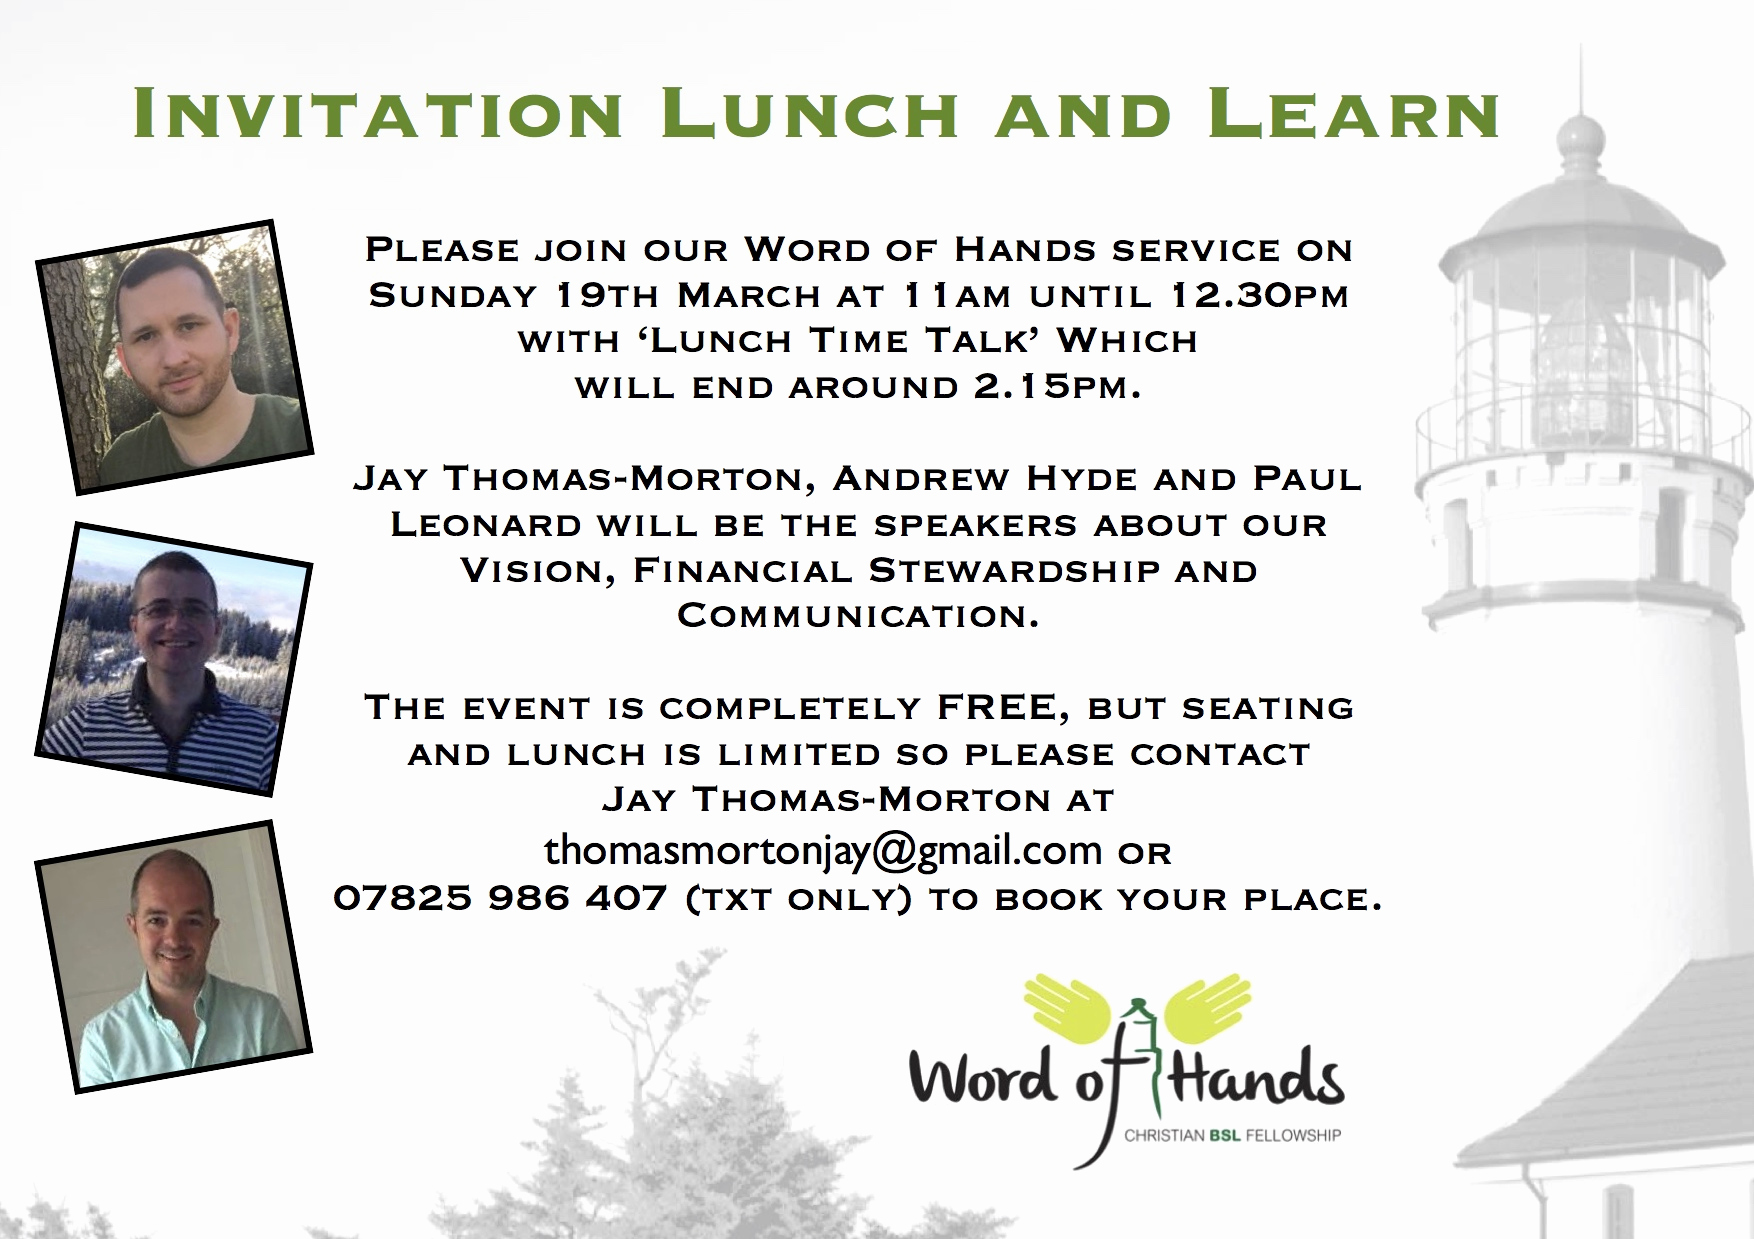 Lunch and Learn Invitation Awesome Word Of Hands Invitation Lunch & Learn